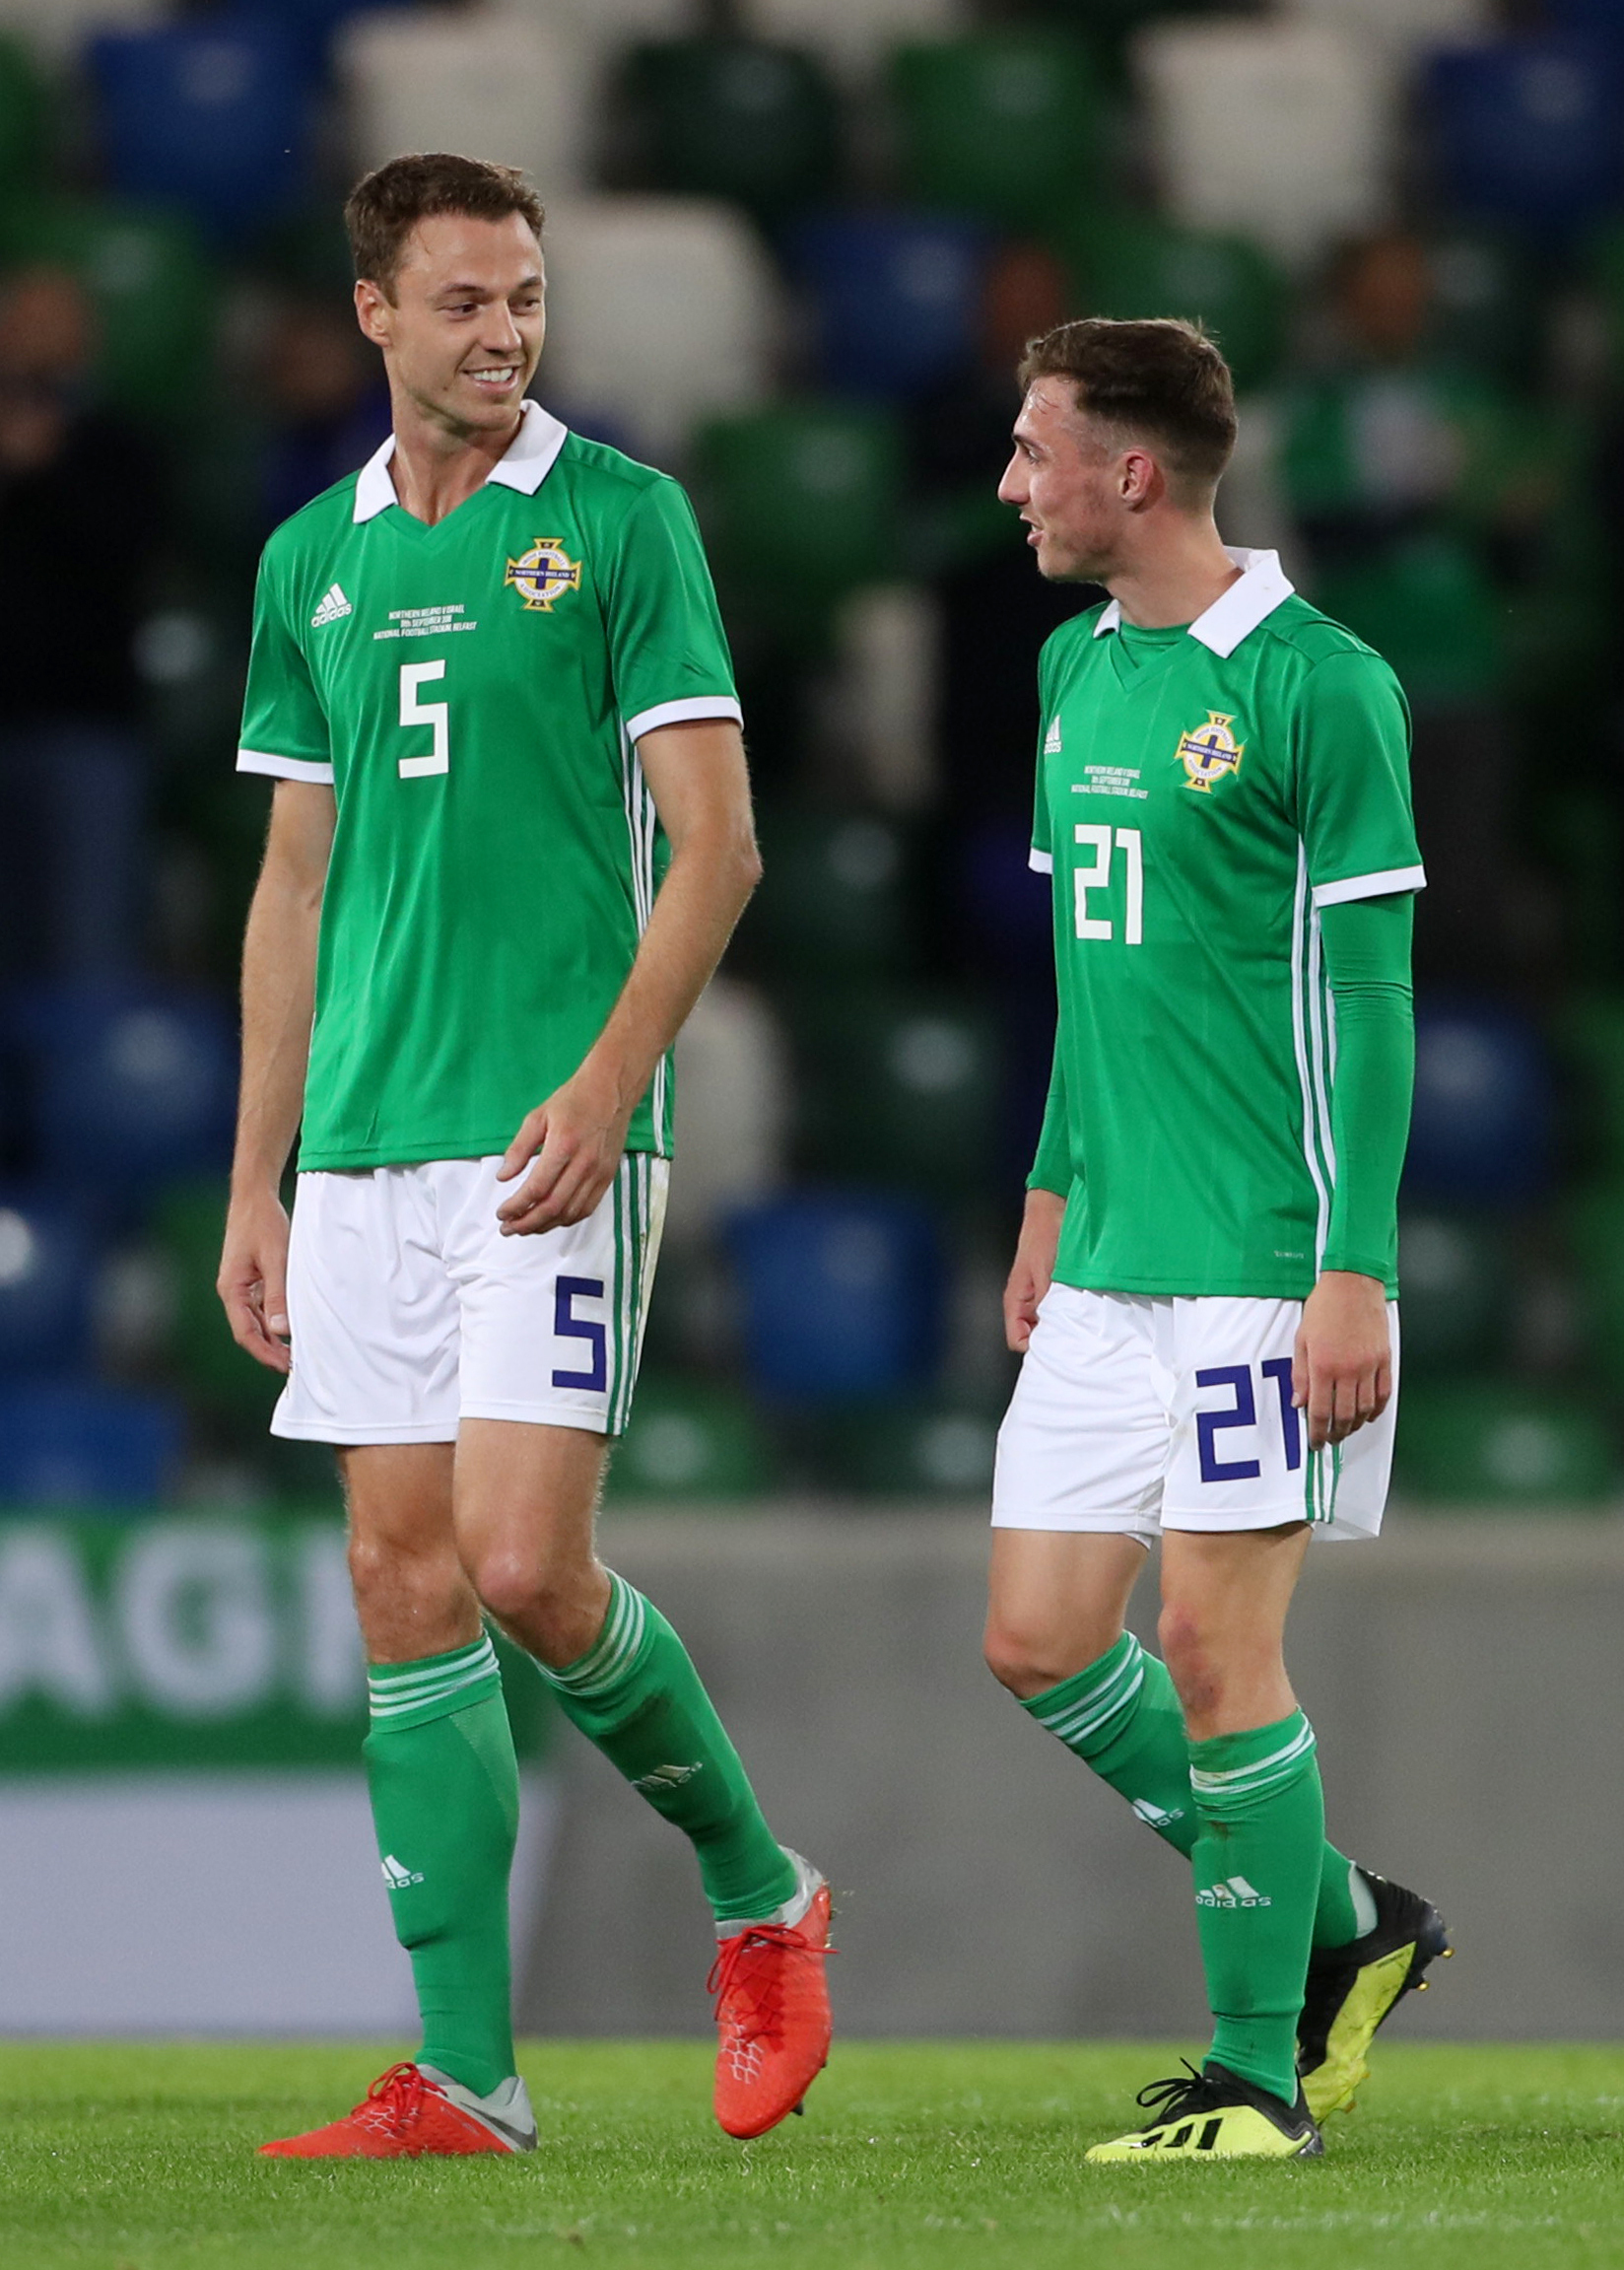 BIG INFLUENCE: Gavin Whyte leaves the field with Northern Ireland's Jonny Evans after scoring on his international debut against Israel on Tuesday nightPicture: Liam McBurney/PA Wire